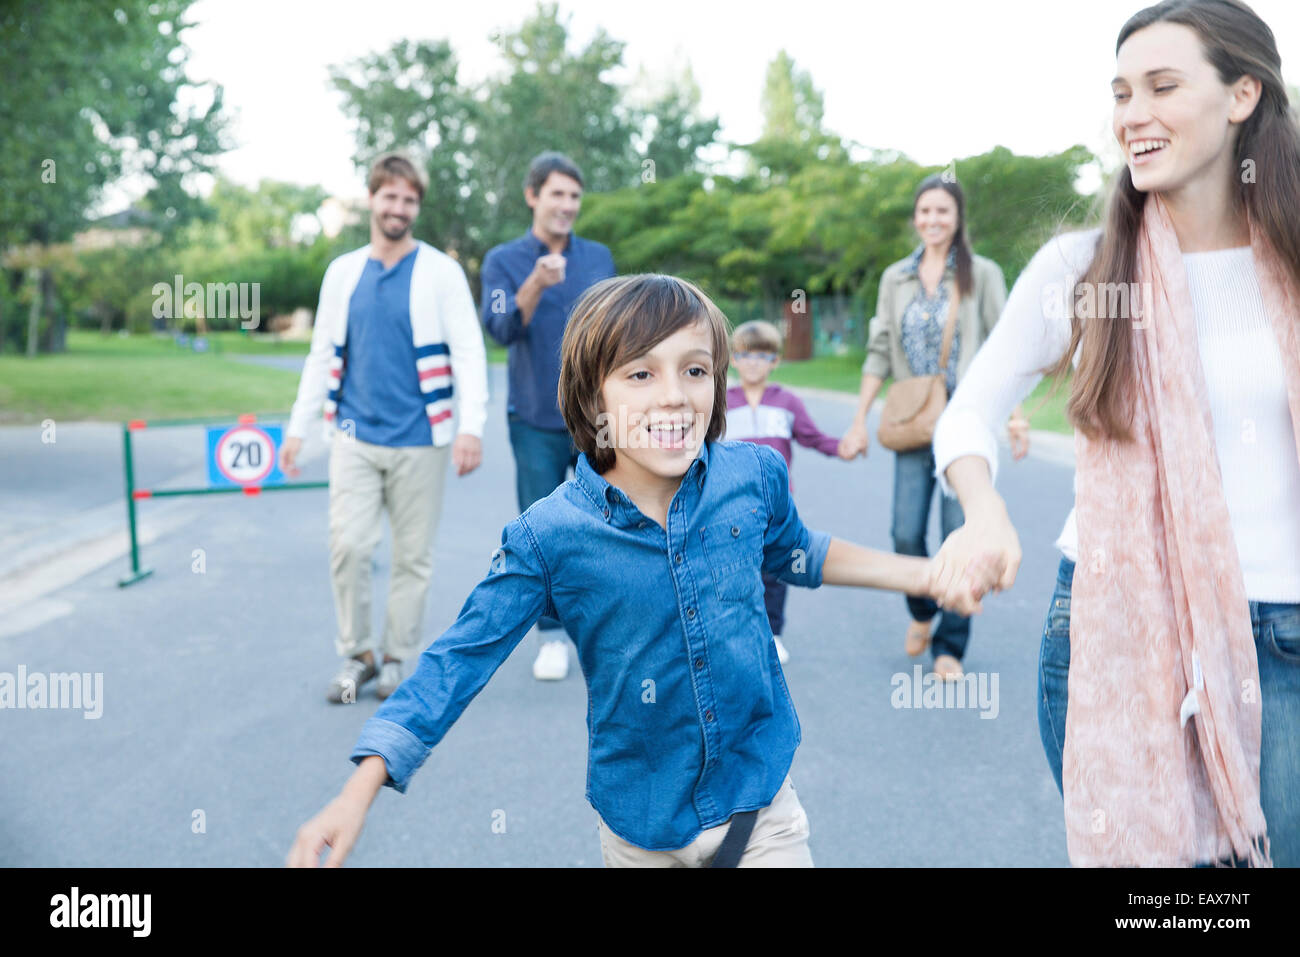 Family walking together outdoors - Stock Image